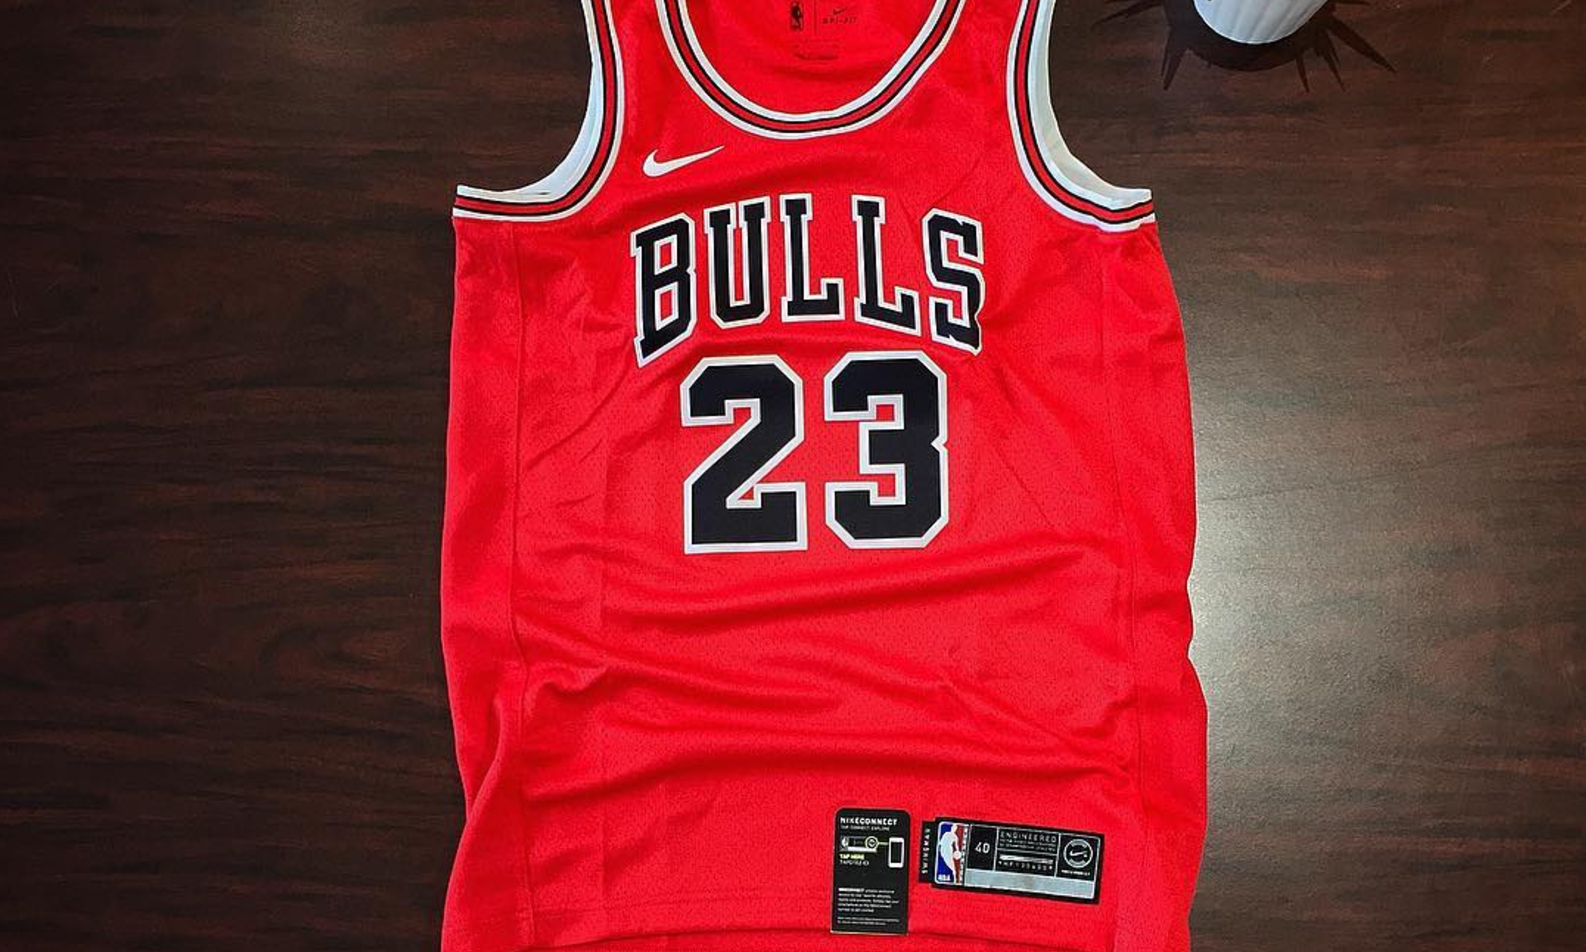 huge selection of 53d8c da289 Michael Jordan's Bulls Jersey Returns in Swoosh Mode ...